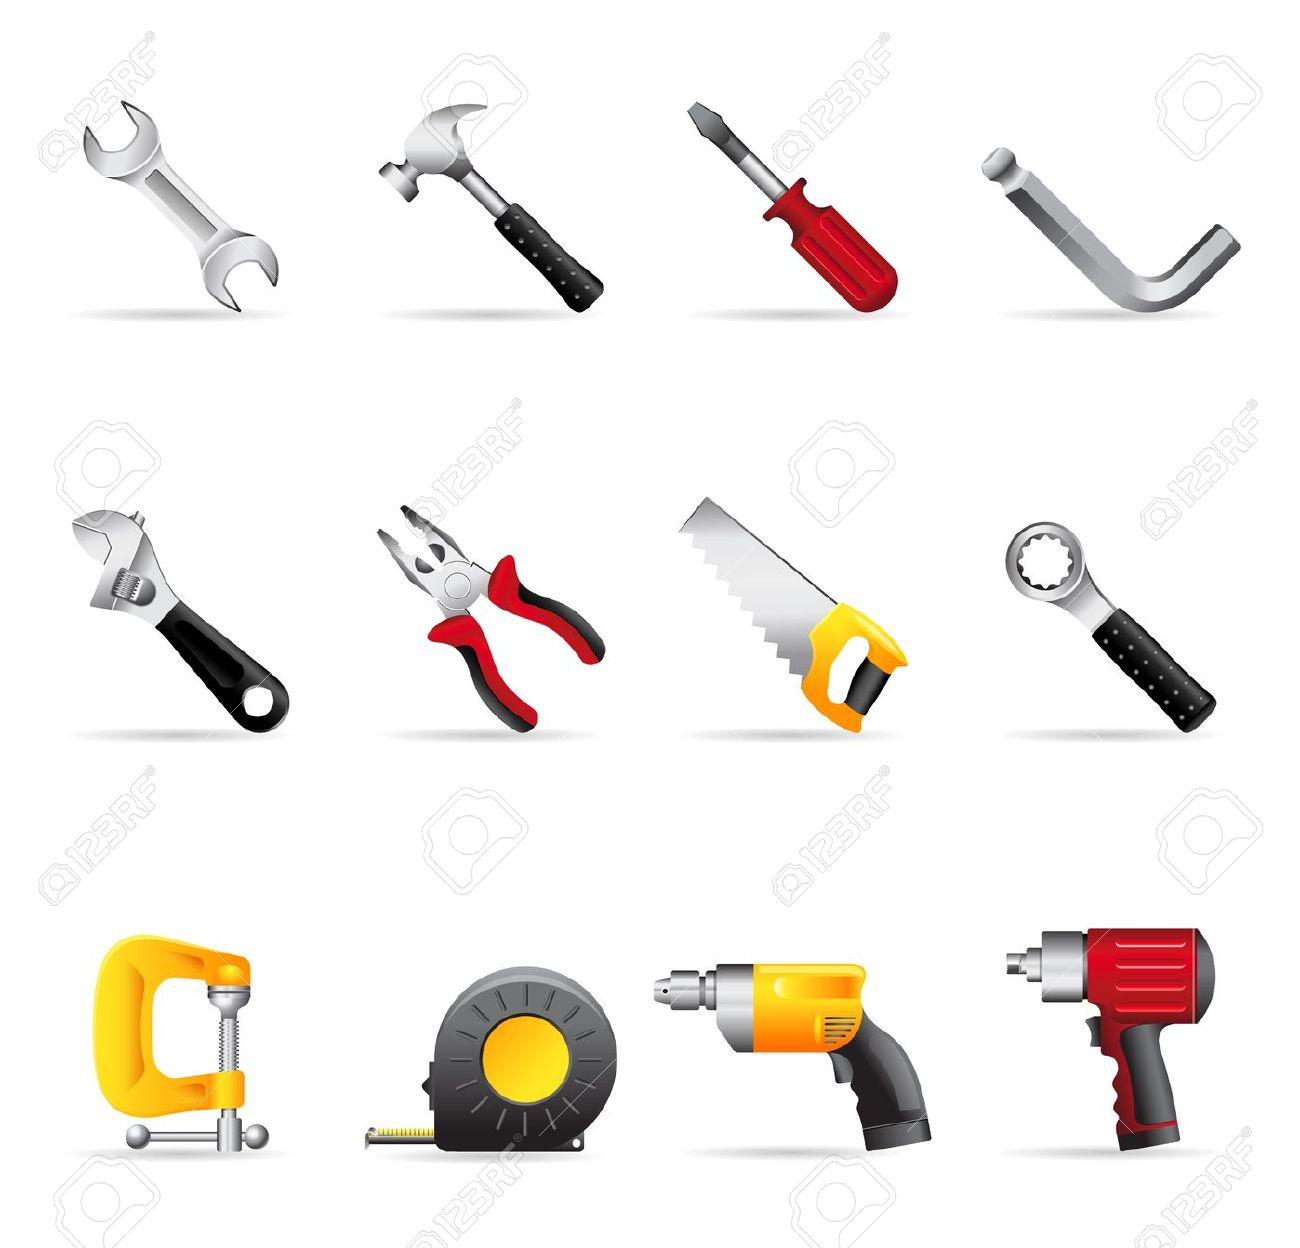 Hand Tool Clipart.